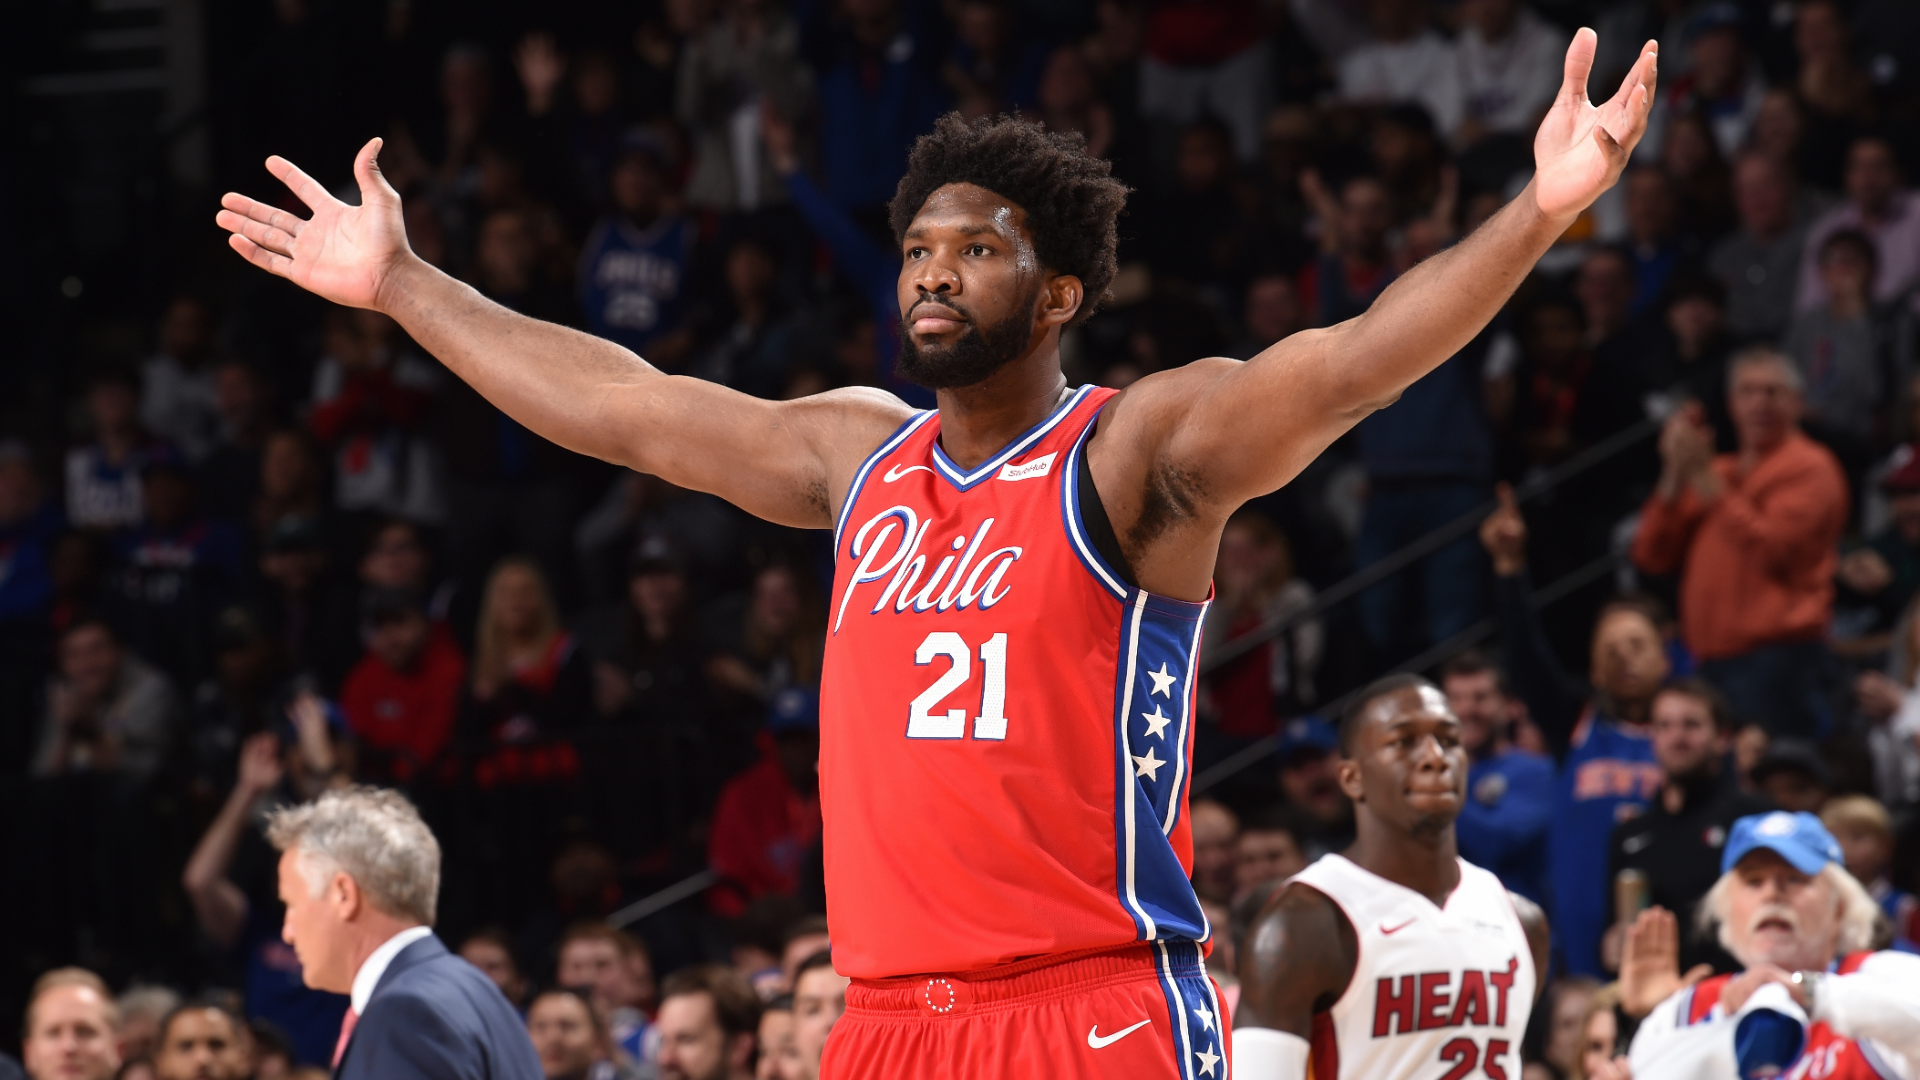 A simple mindset change has Philadelphia 76ers All-Star Joel Embiid dominating opposing defences again